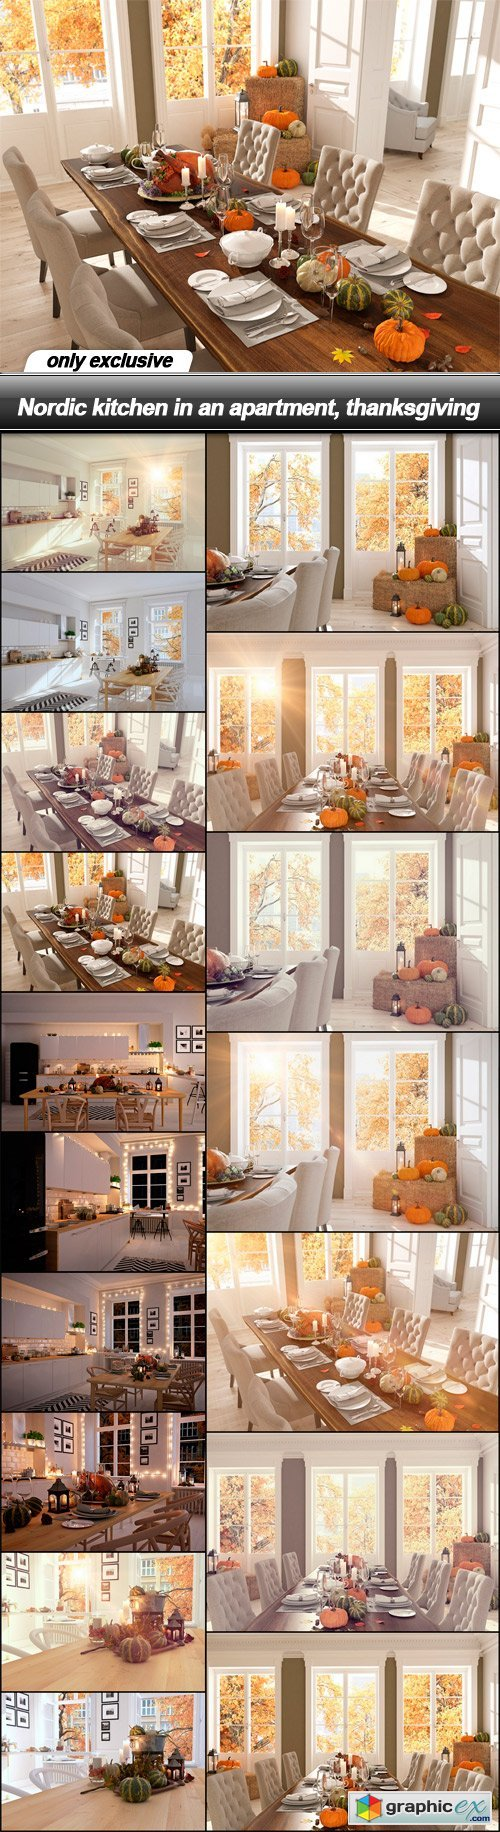 Nordic kitchen in an apartment, thanksgiving - 17 UHQ JPEG